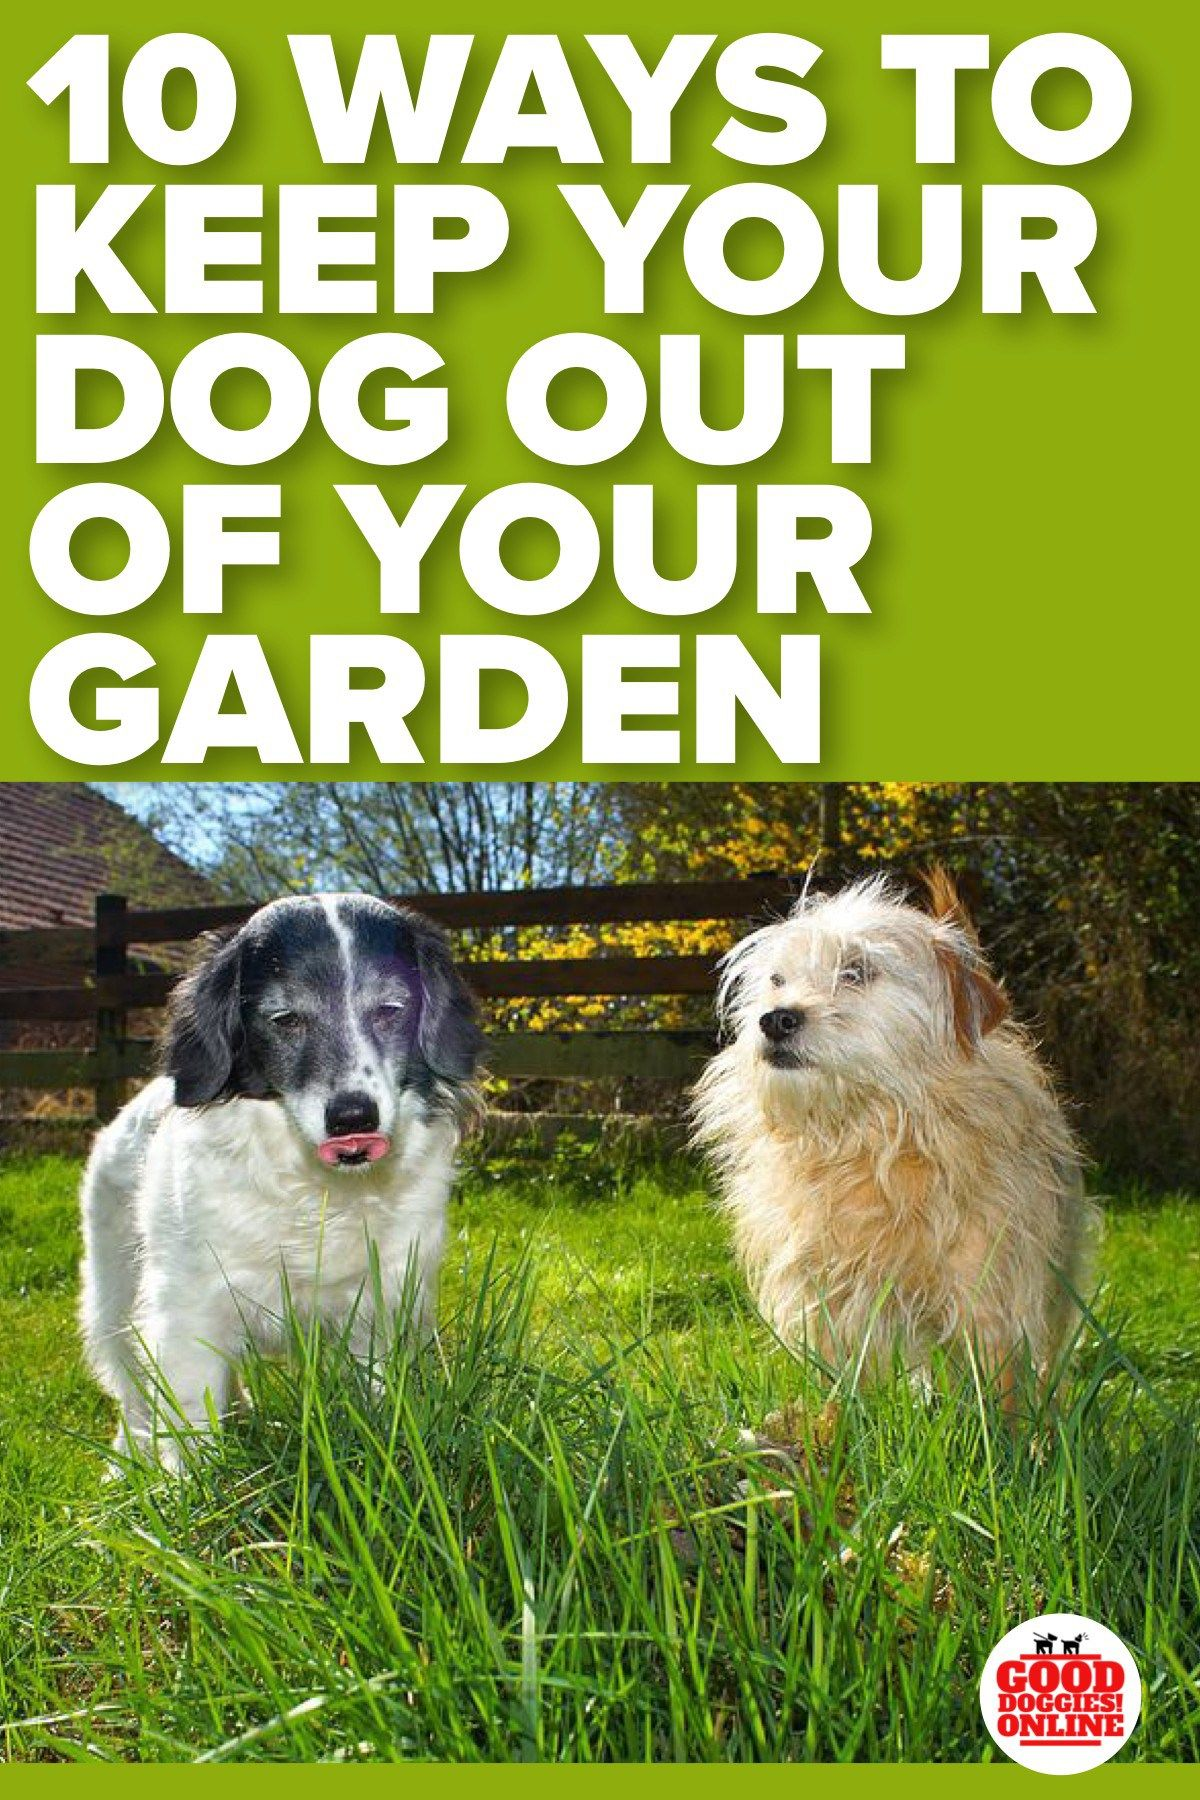 How to Keep Dogs Out of Garden & Flower Beds Dog garden